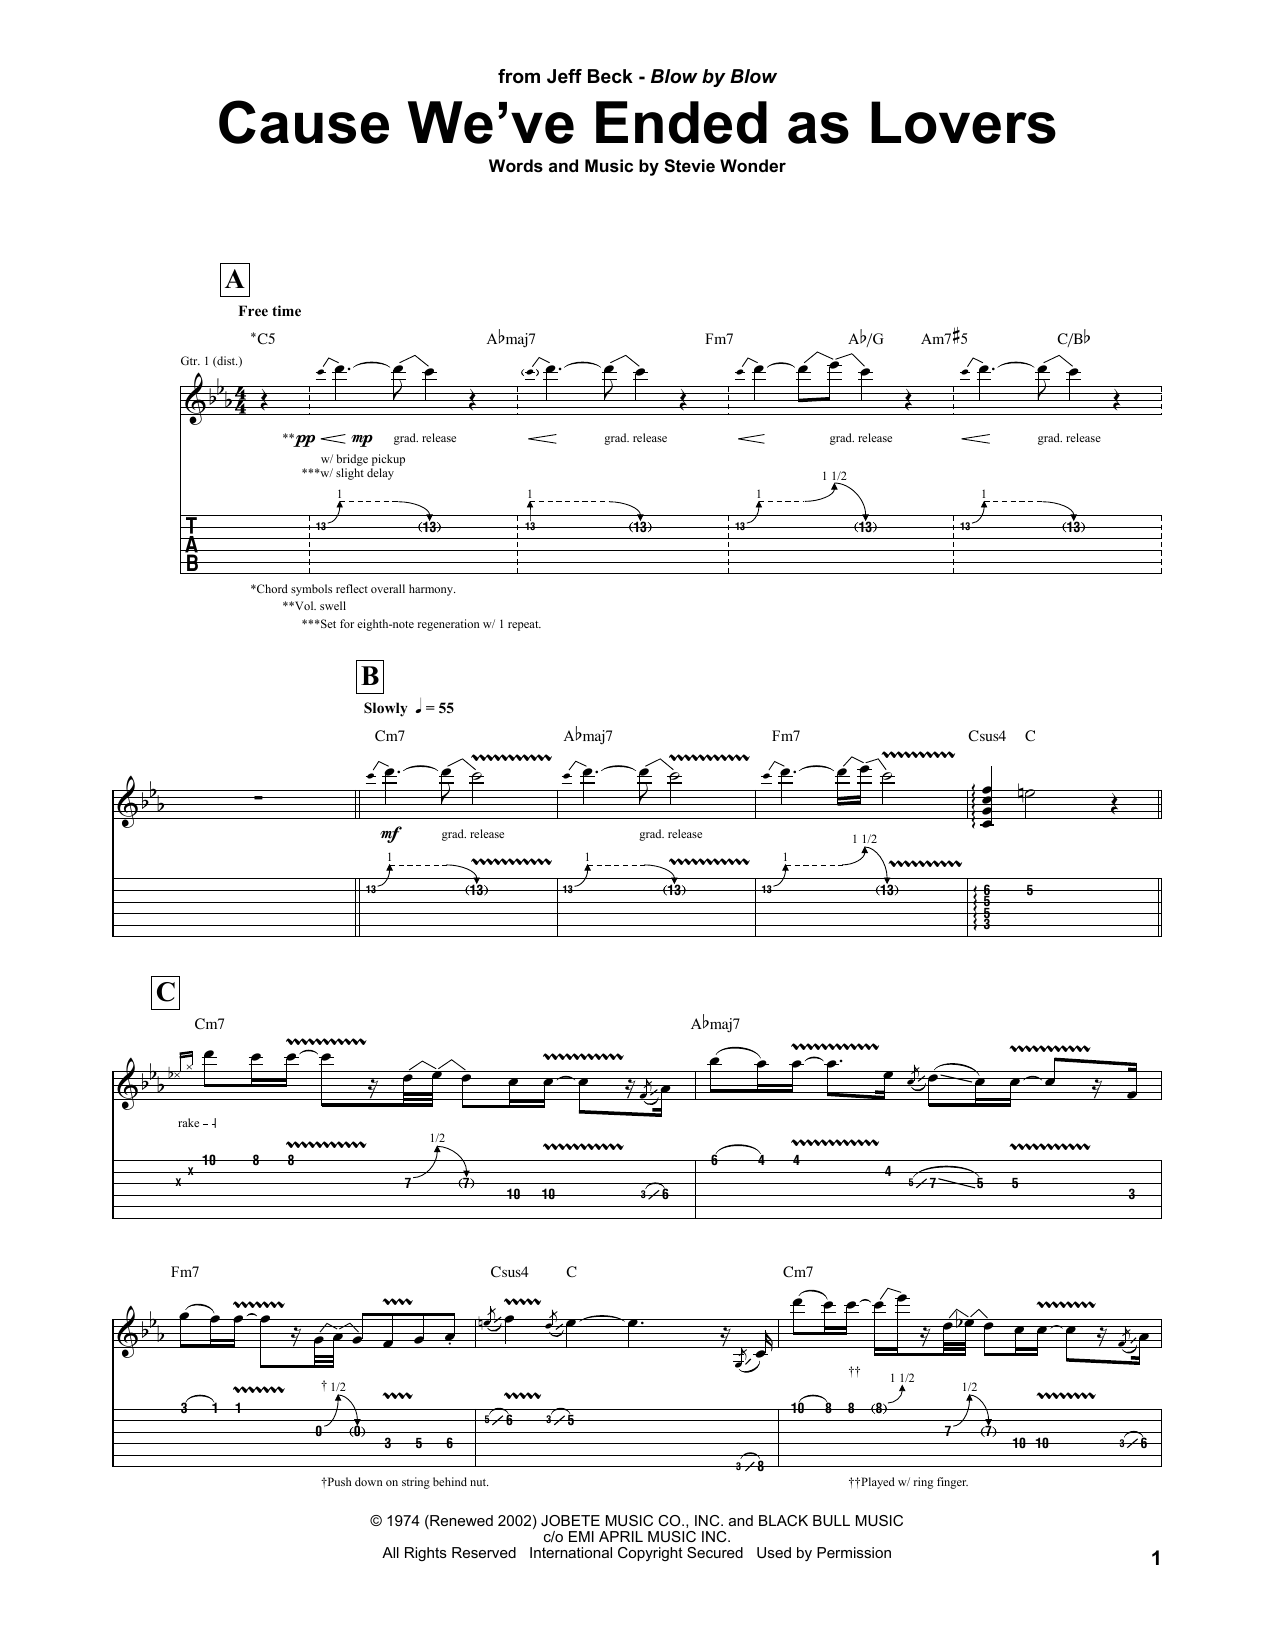 Cause We've Ended As Lovers Sheet Music